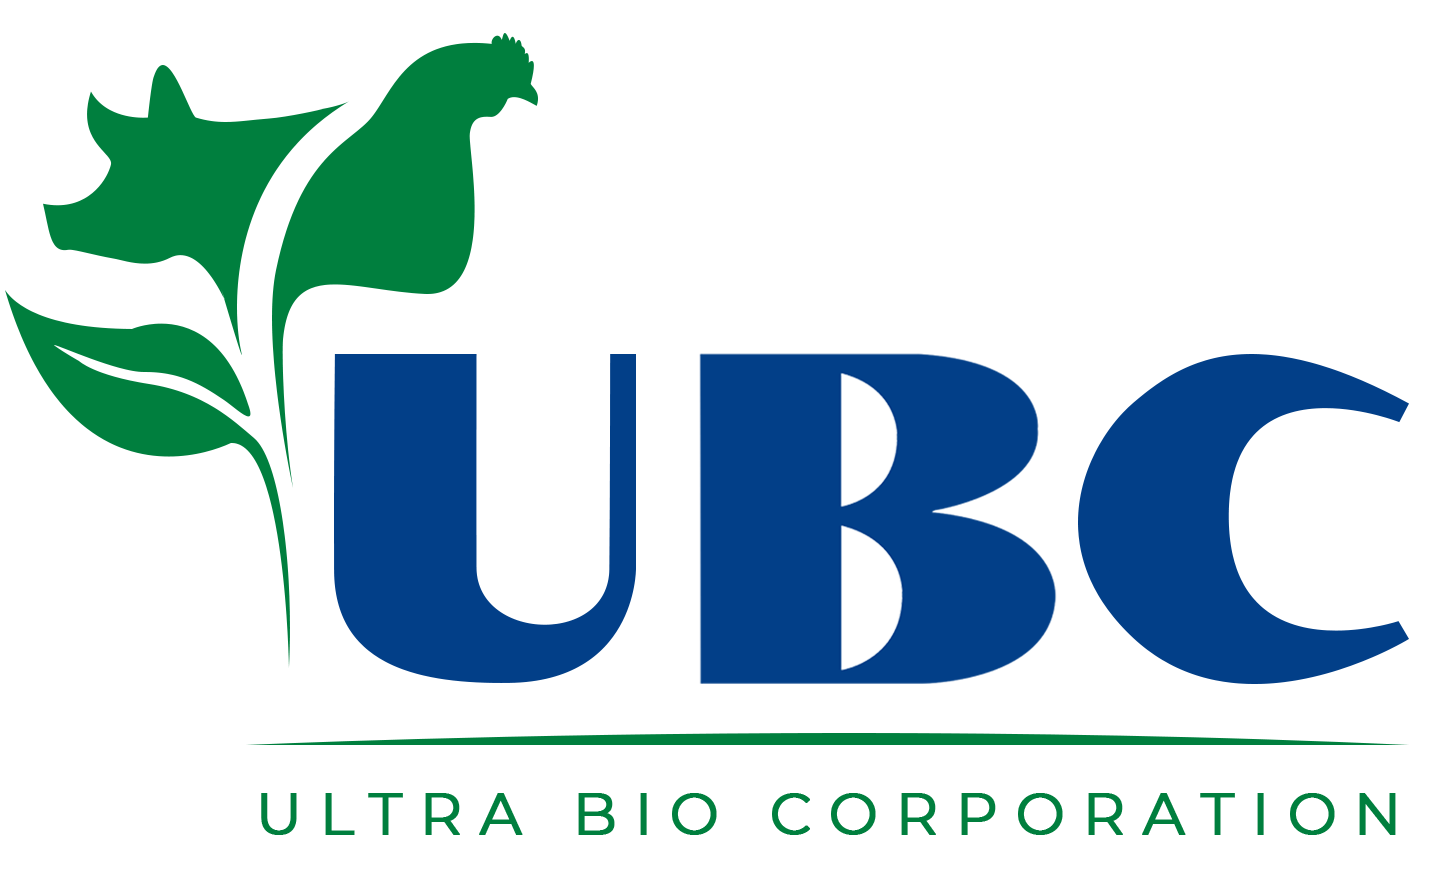 Ultra Bio Corporation